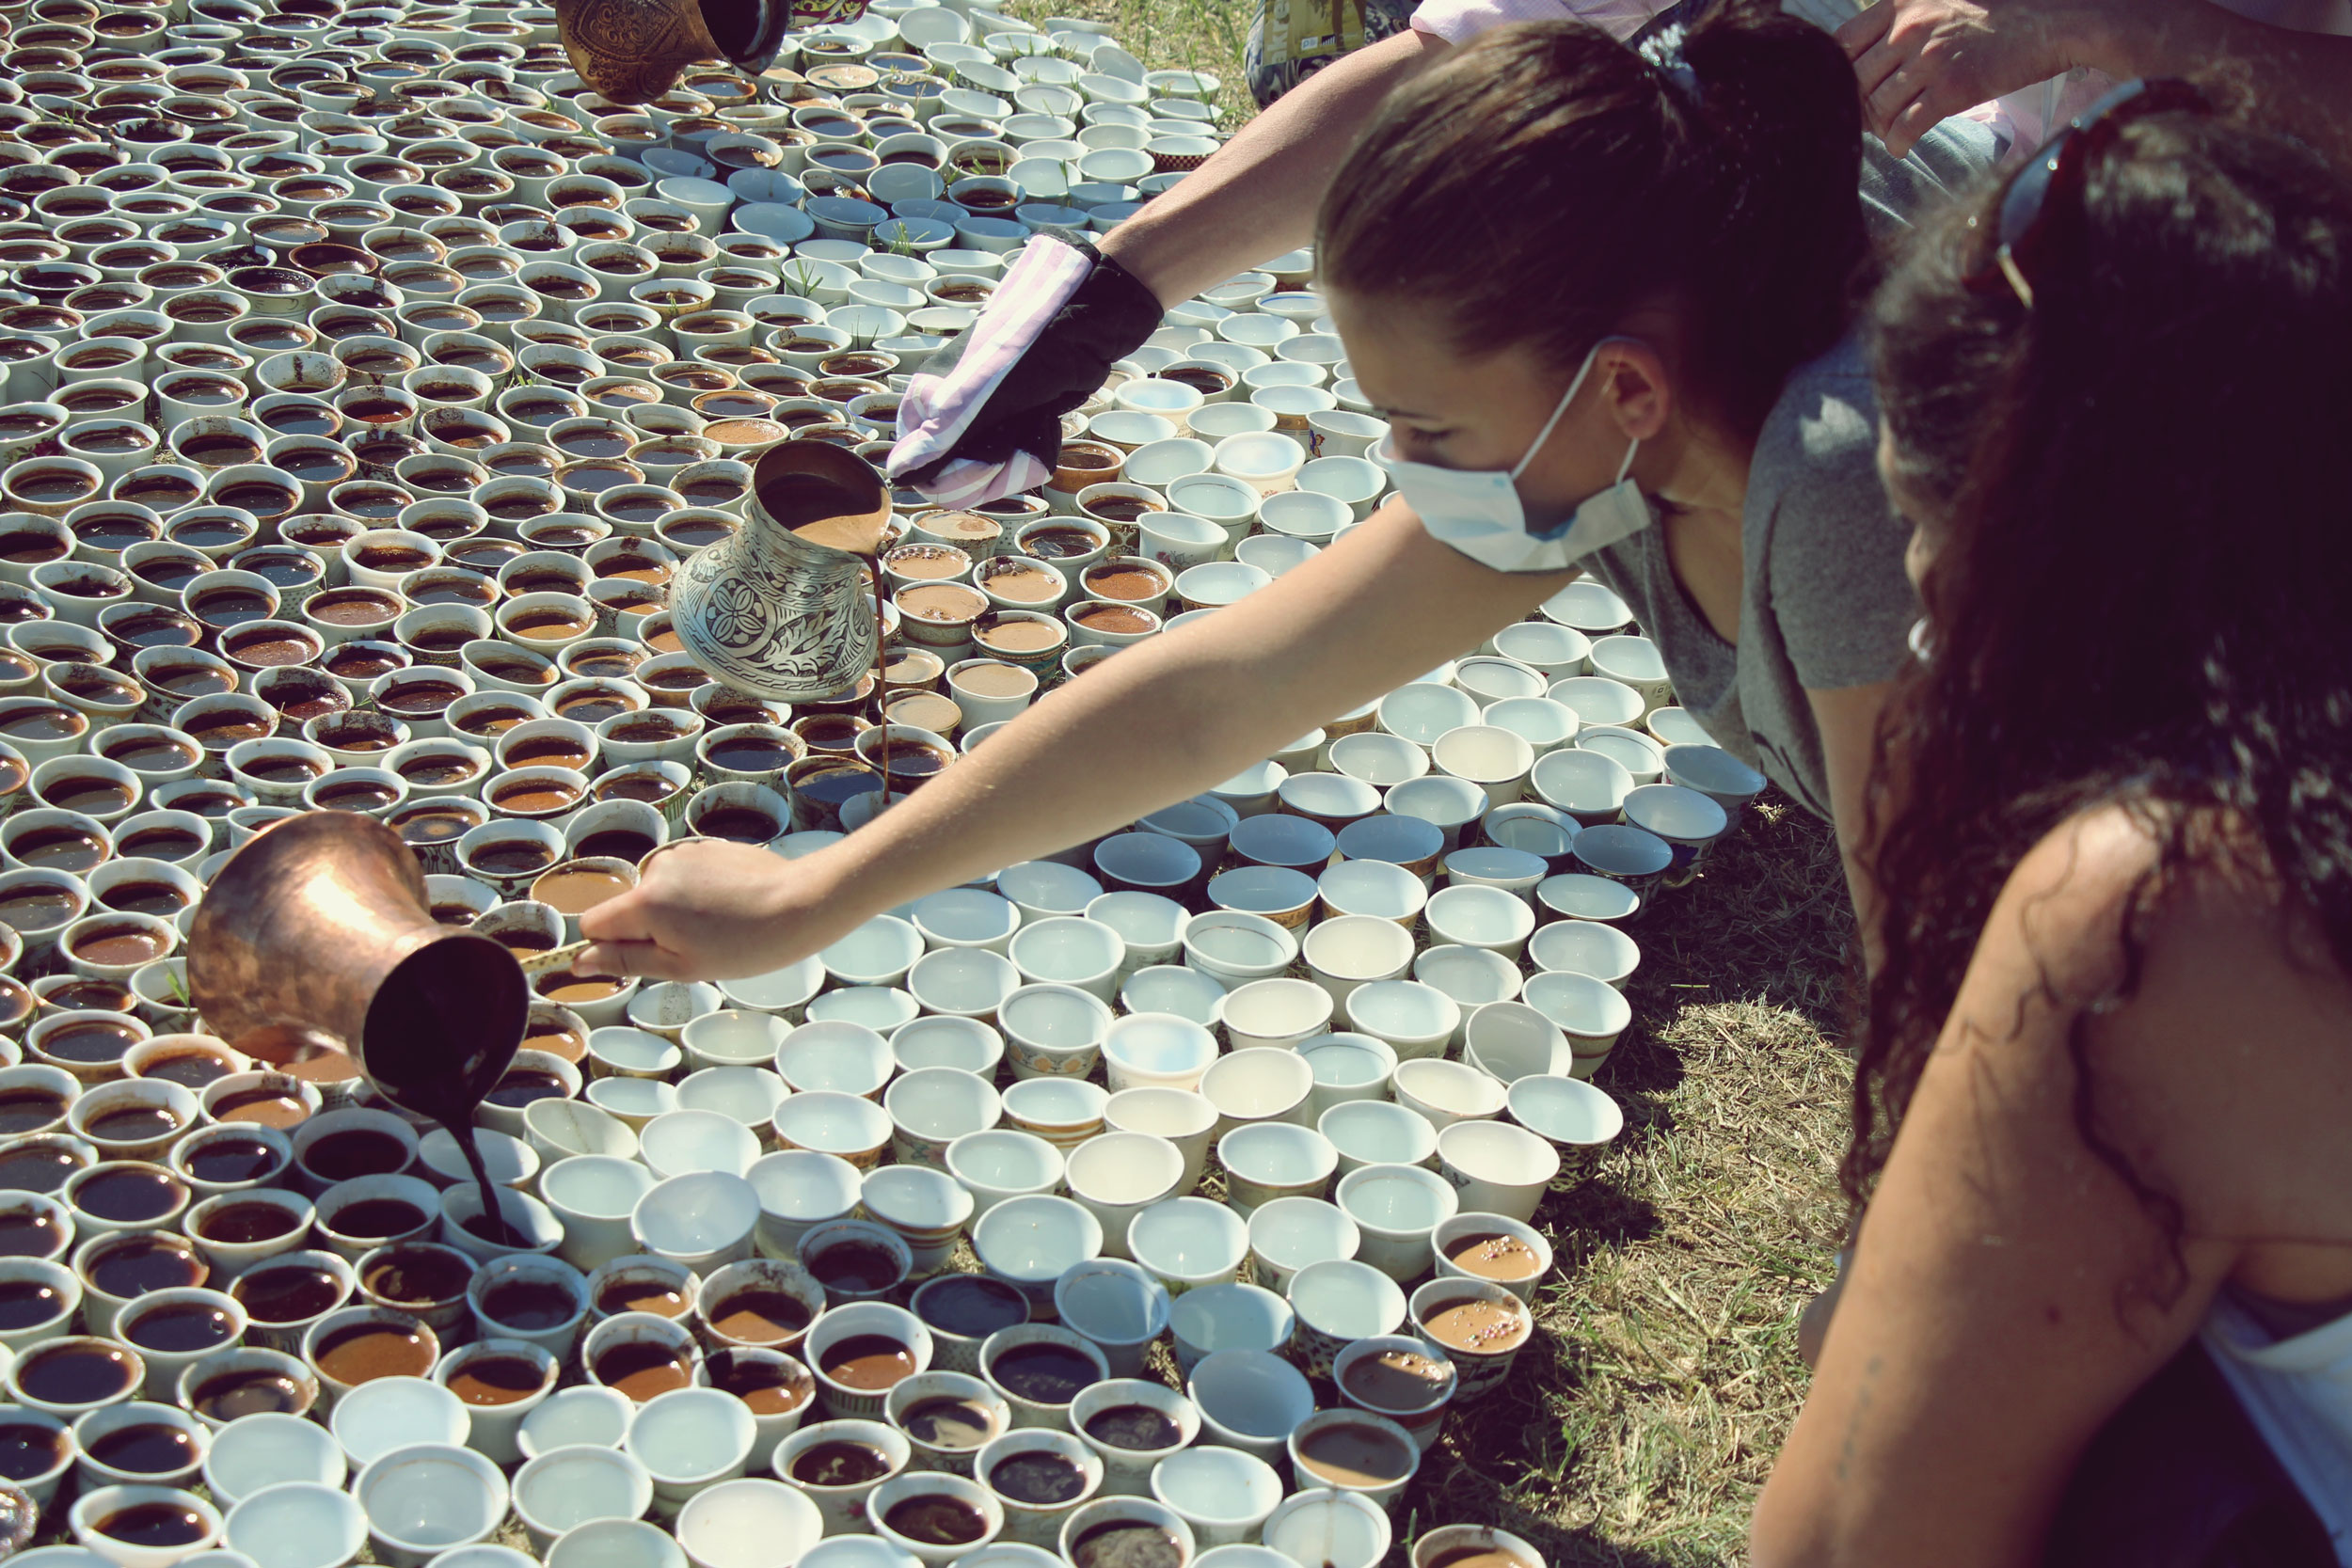 A photograph of people pouring liquid into cups.